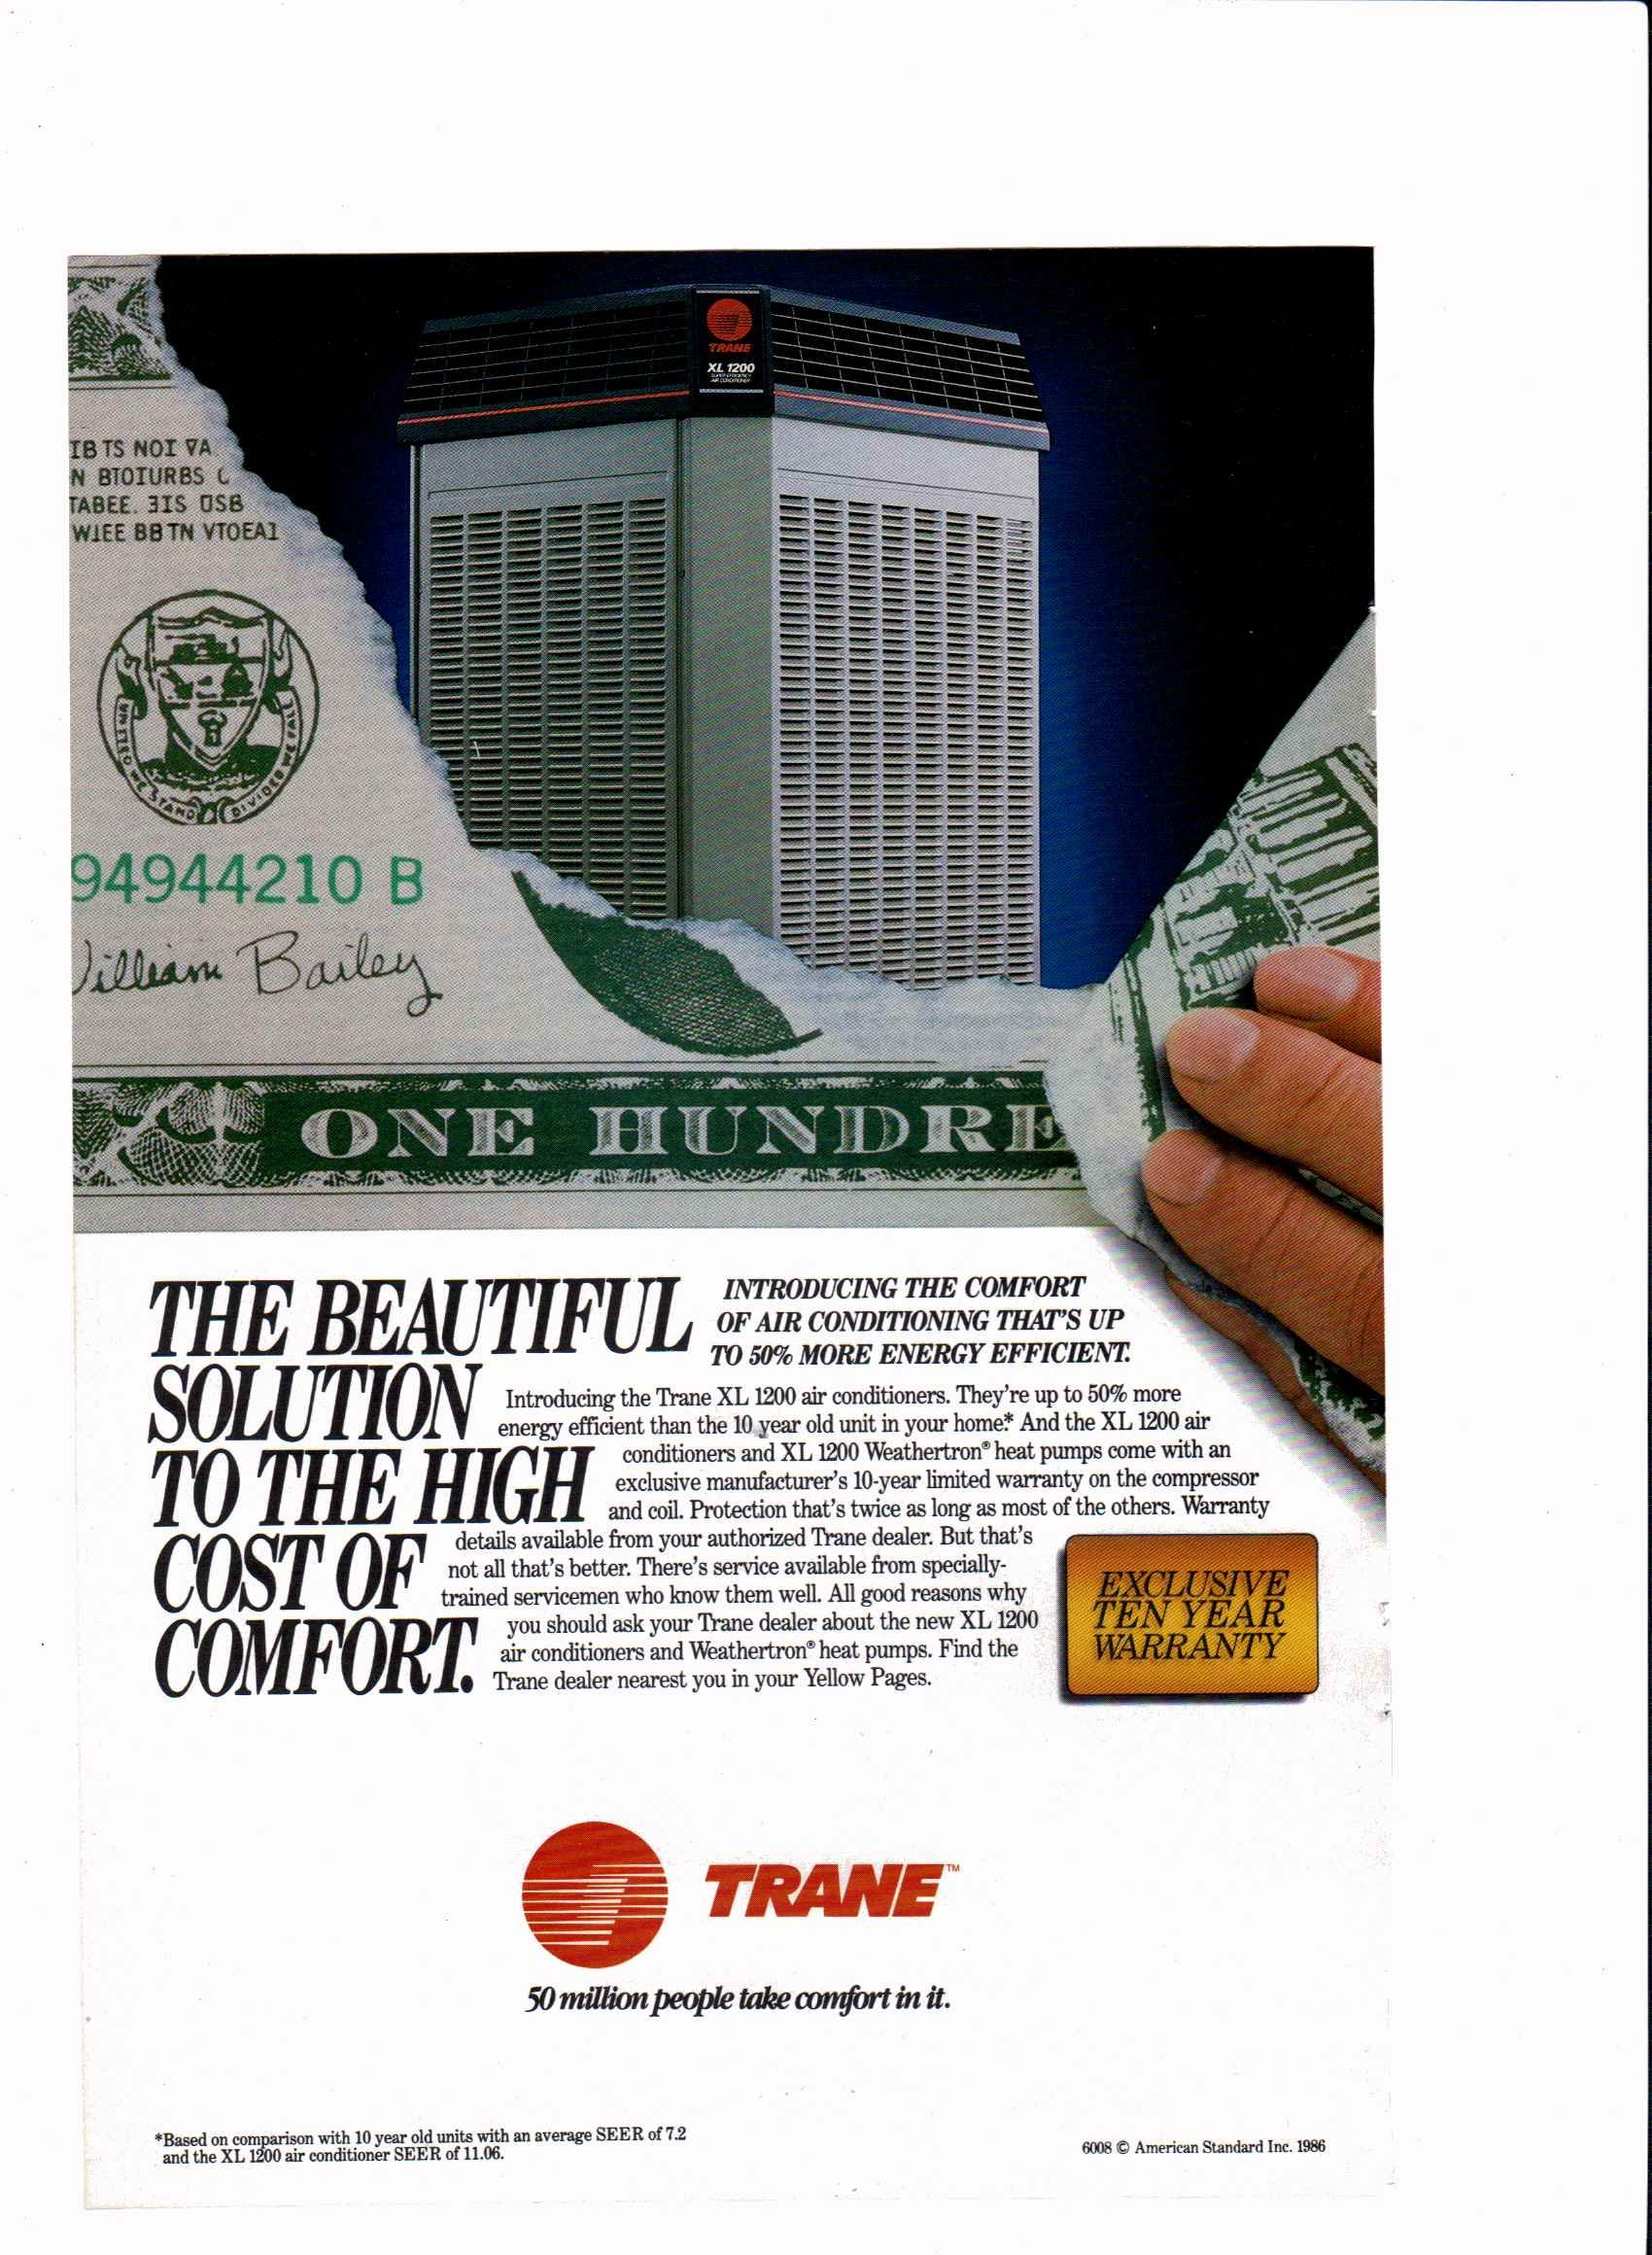 1986 Trane Air Conditioning Ad National Geographic July 1986